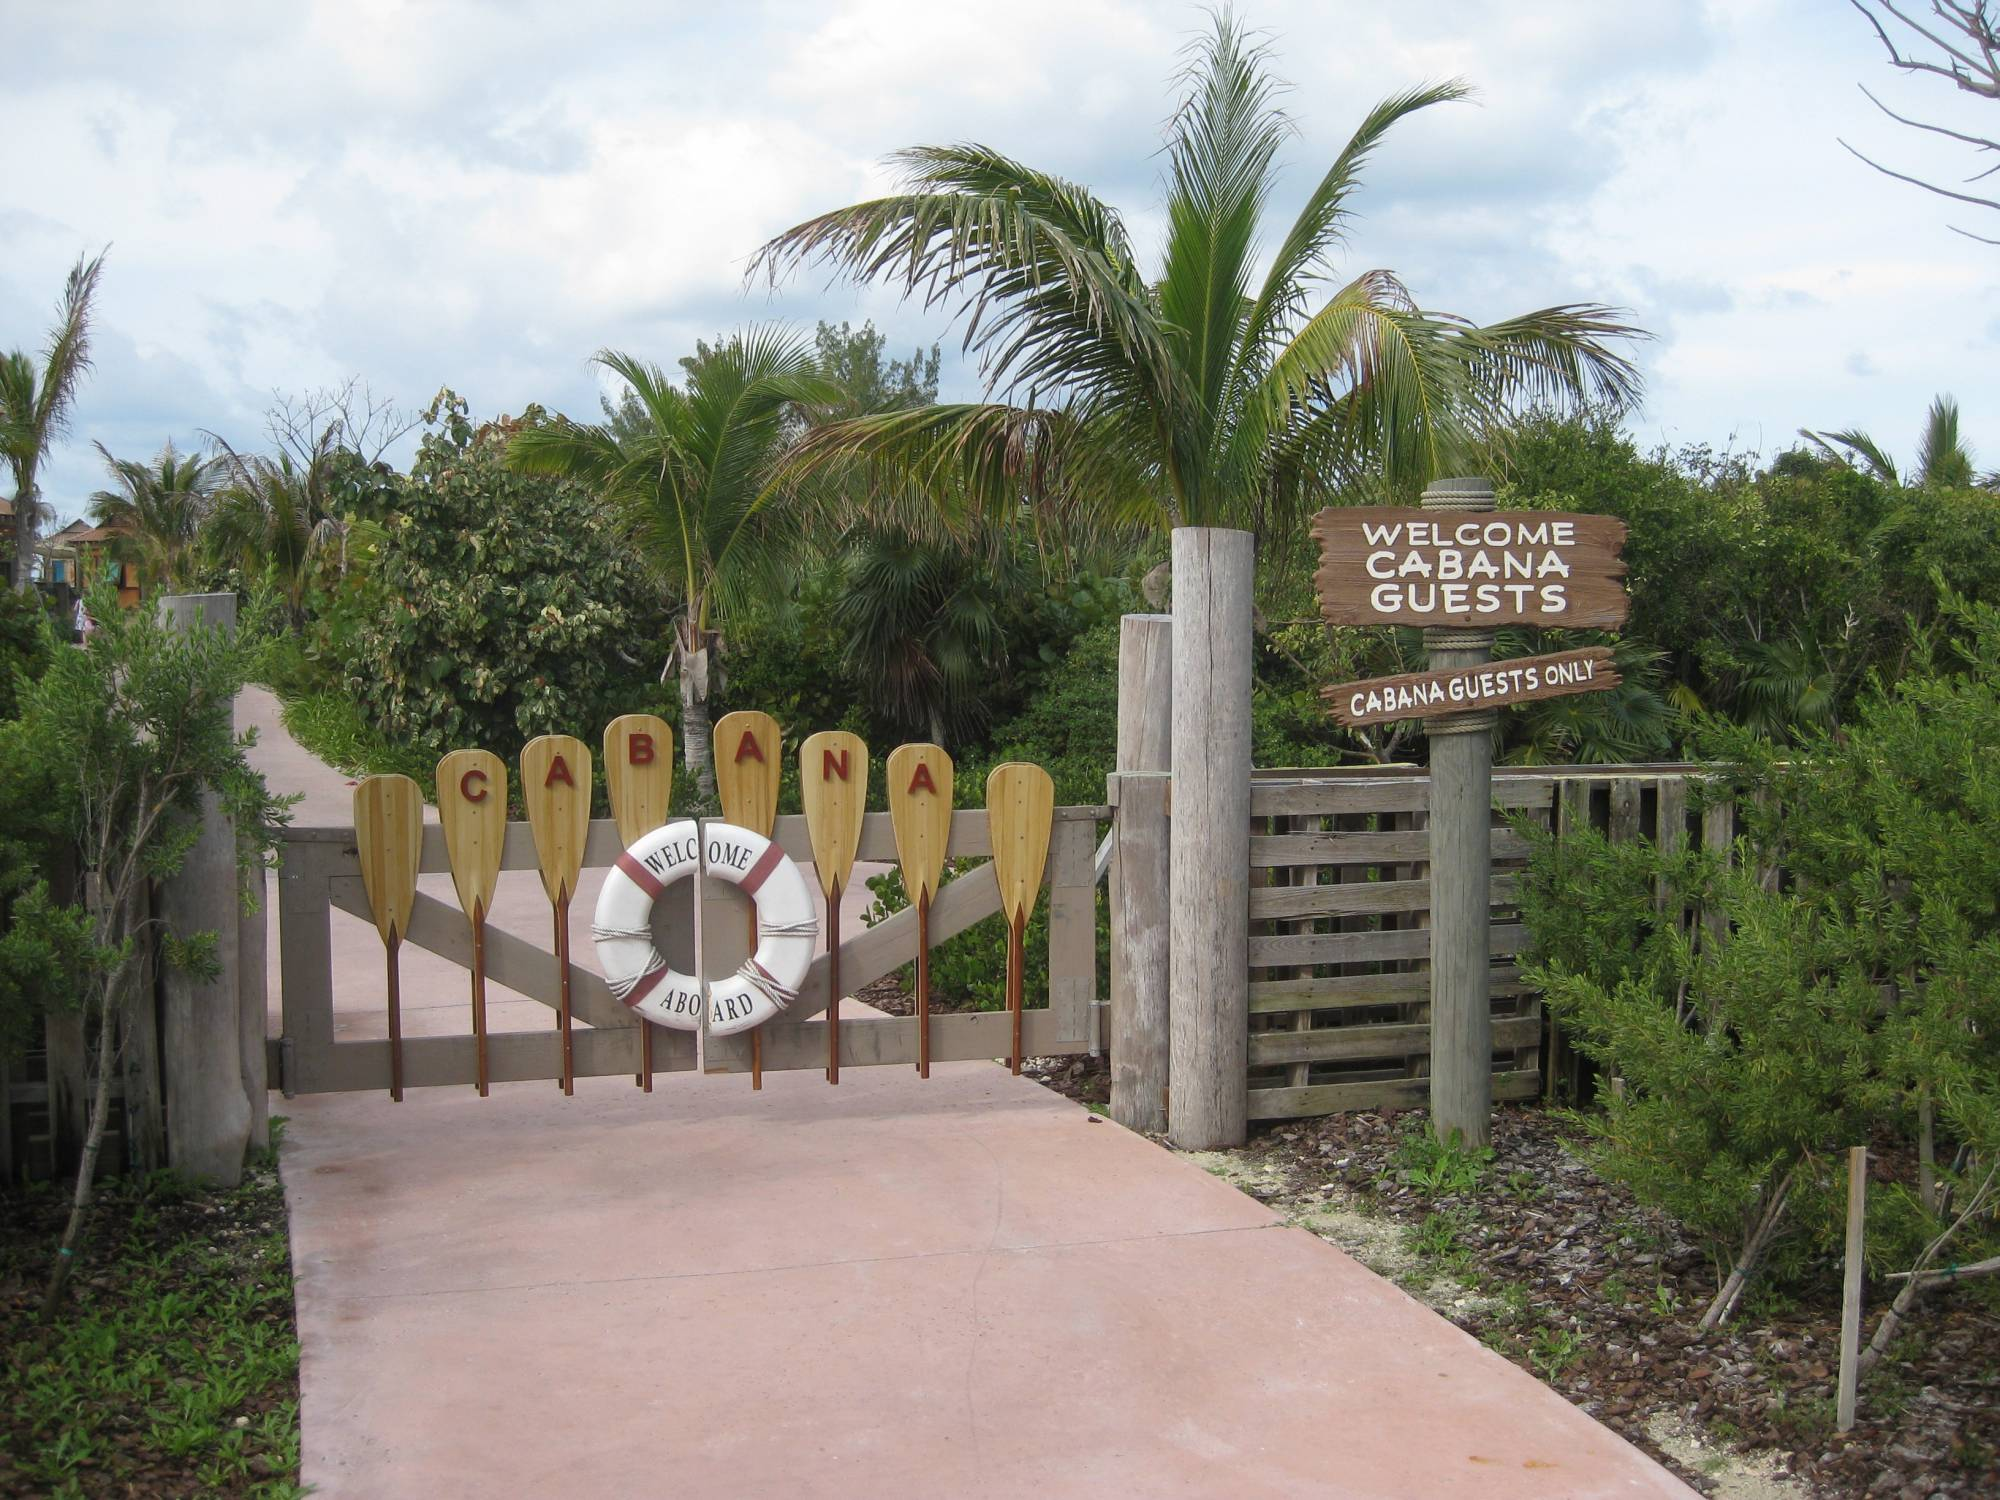 Make the most of Castaway Cay by renting a private cabana |PassPorter.com